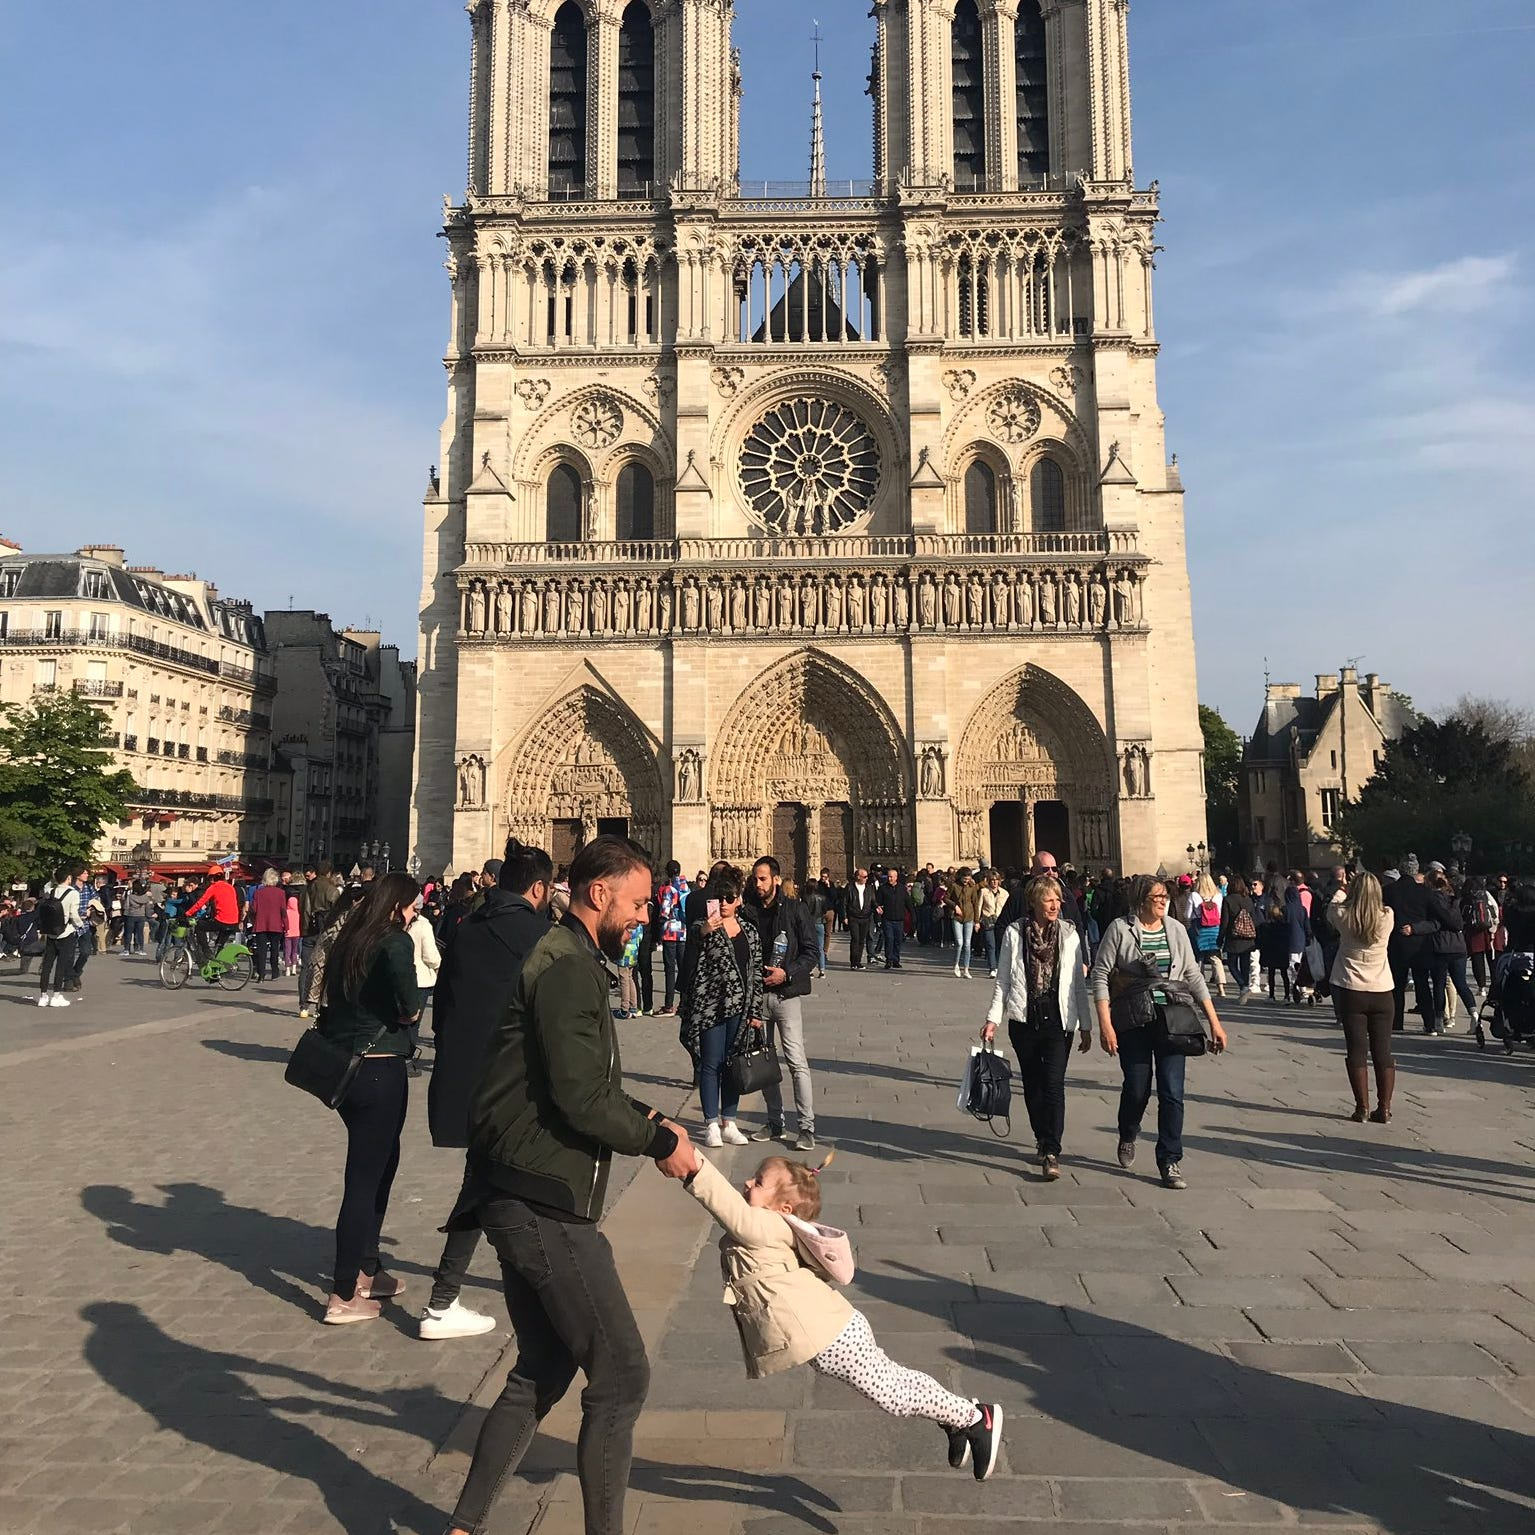 Michigan woman snapped photo of man, child just before Notre Dame fire